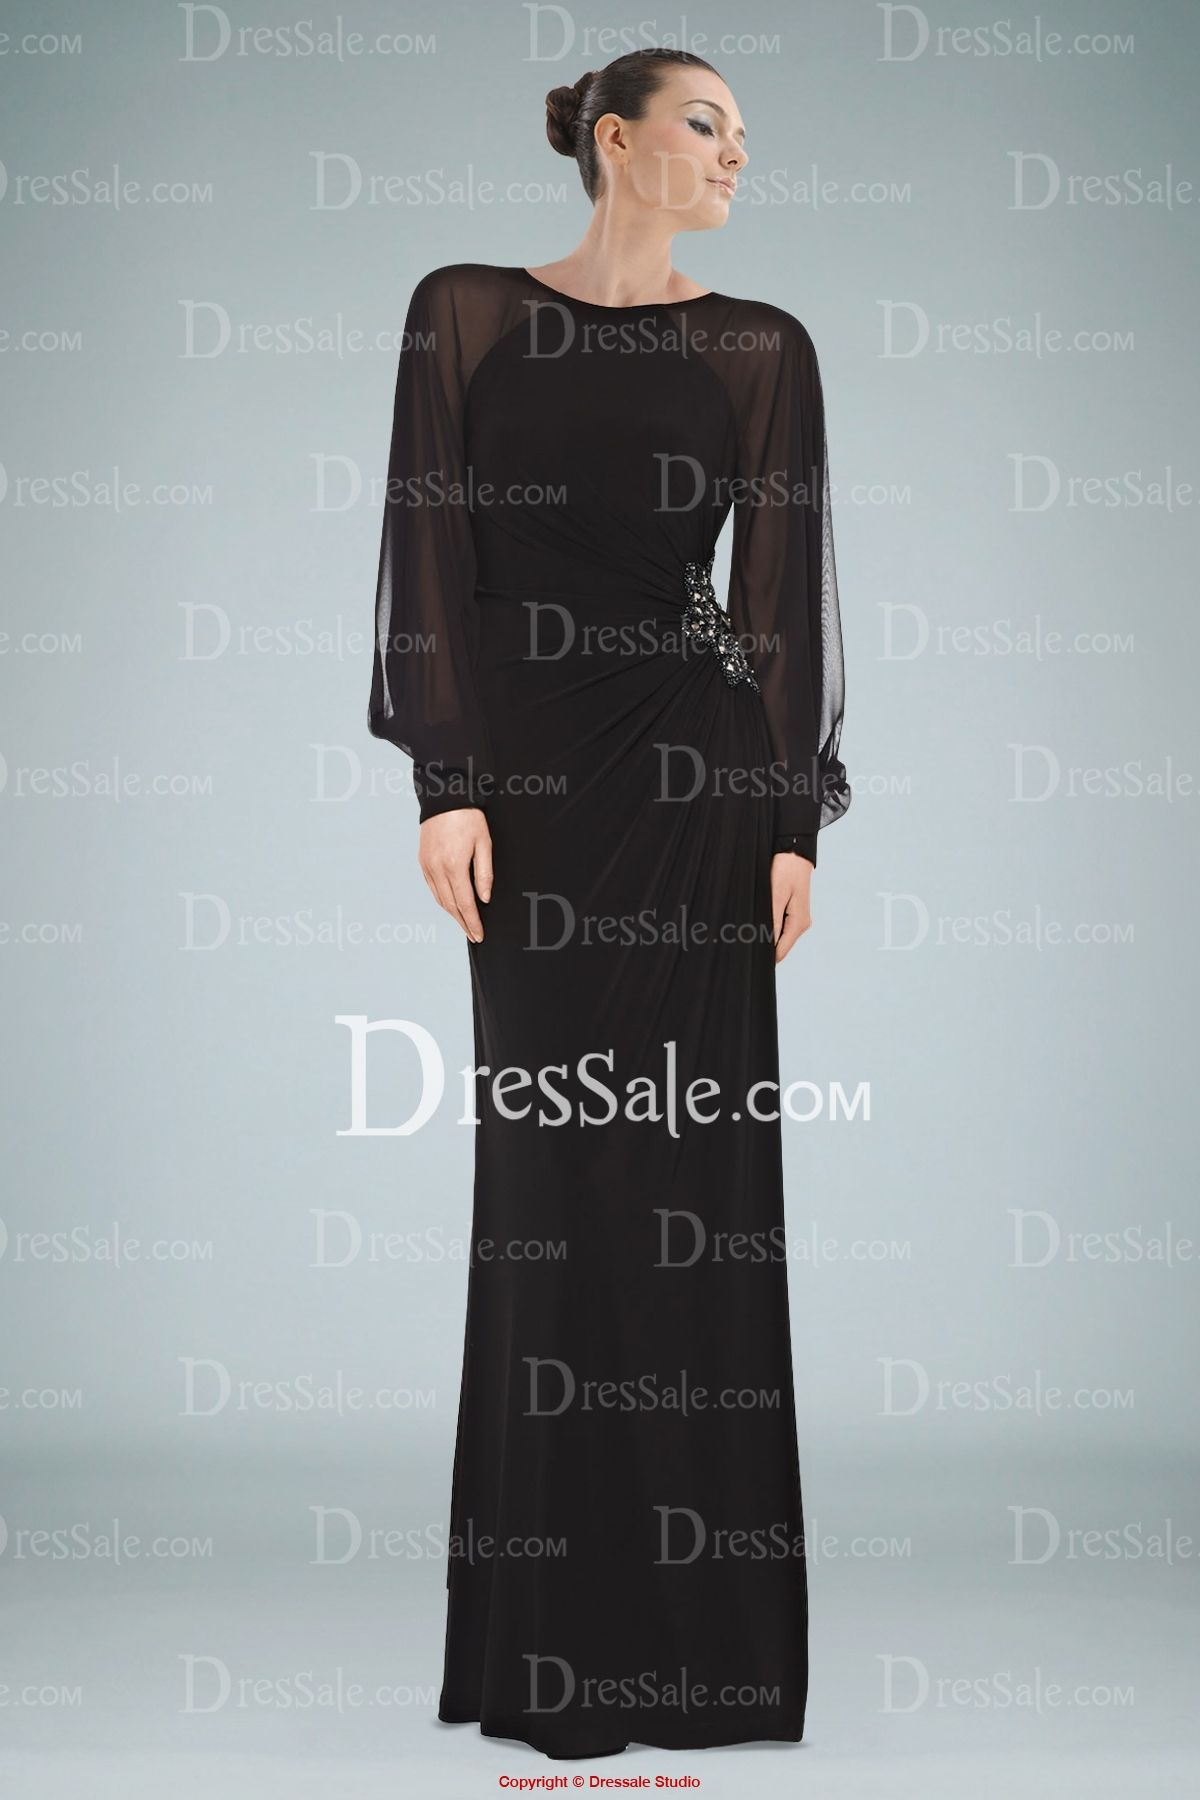 Amazing Black Long Sleeve Evening Gown with Beads and Keyhole Back ...